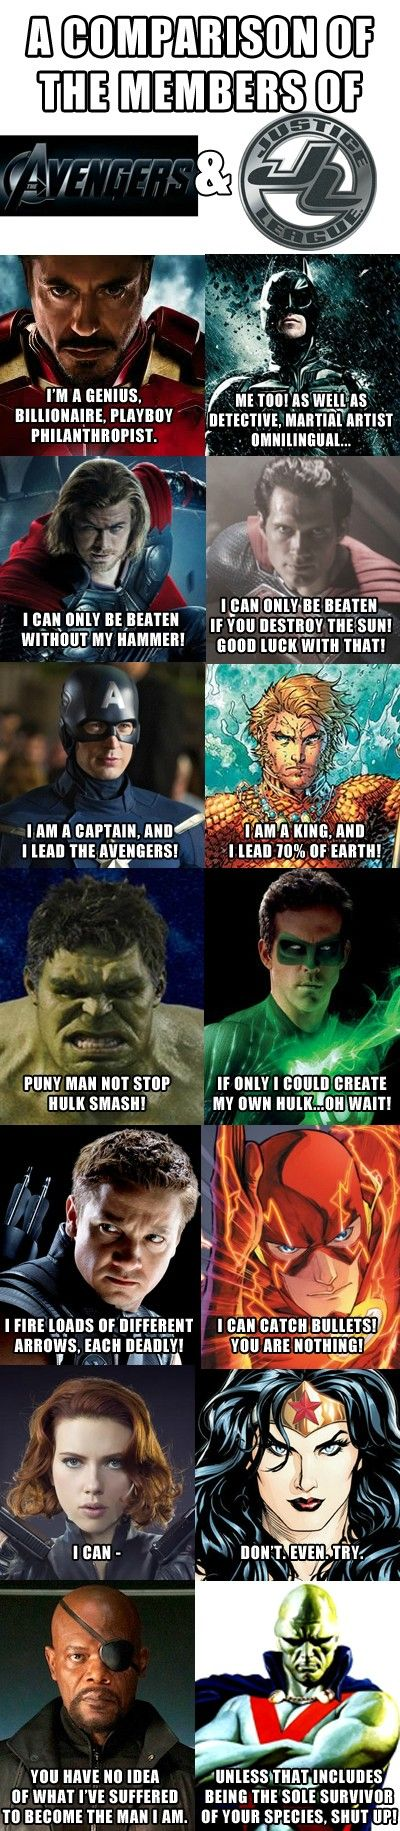 Marvel Gets Slaughtered in this Avengers vs Justice League Comparison http://geekxgirls.com/article.php?ID=5168